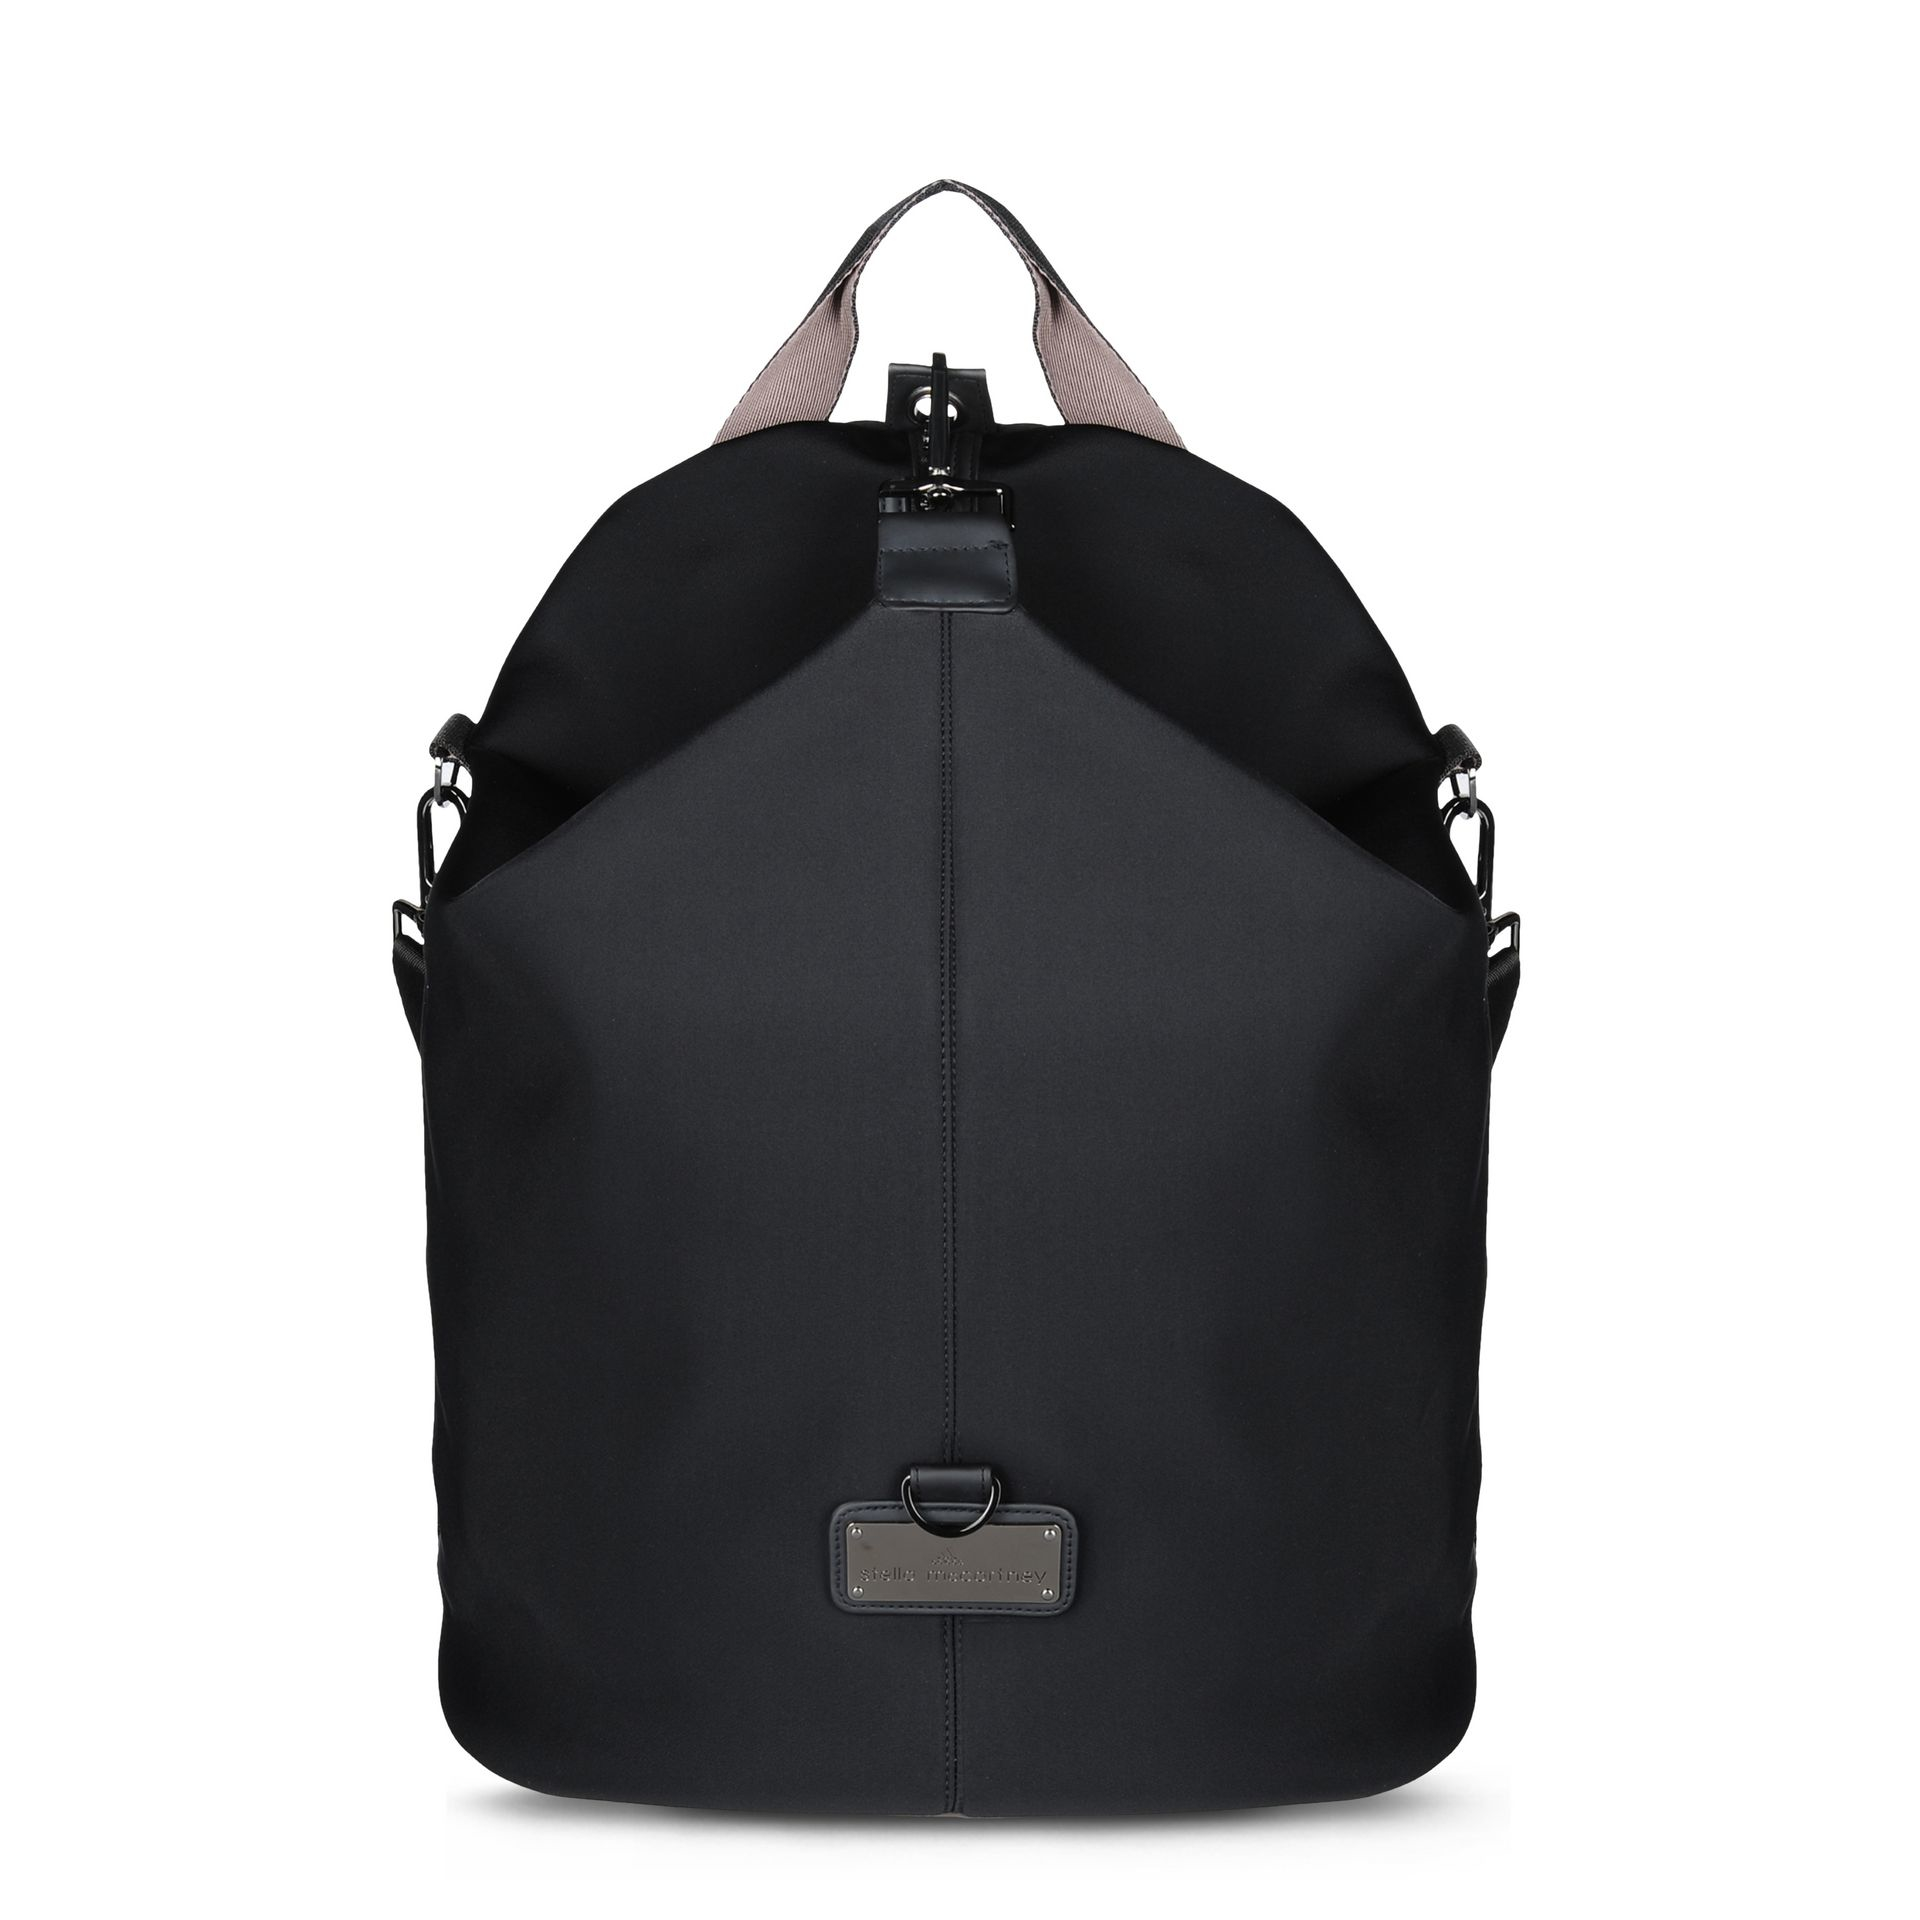 aba2b2e654b9 adidas By Stella McCartney Black Studio Bag in Black - Lyst